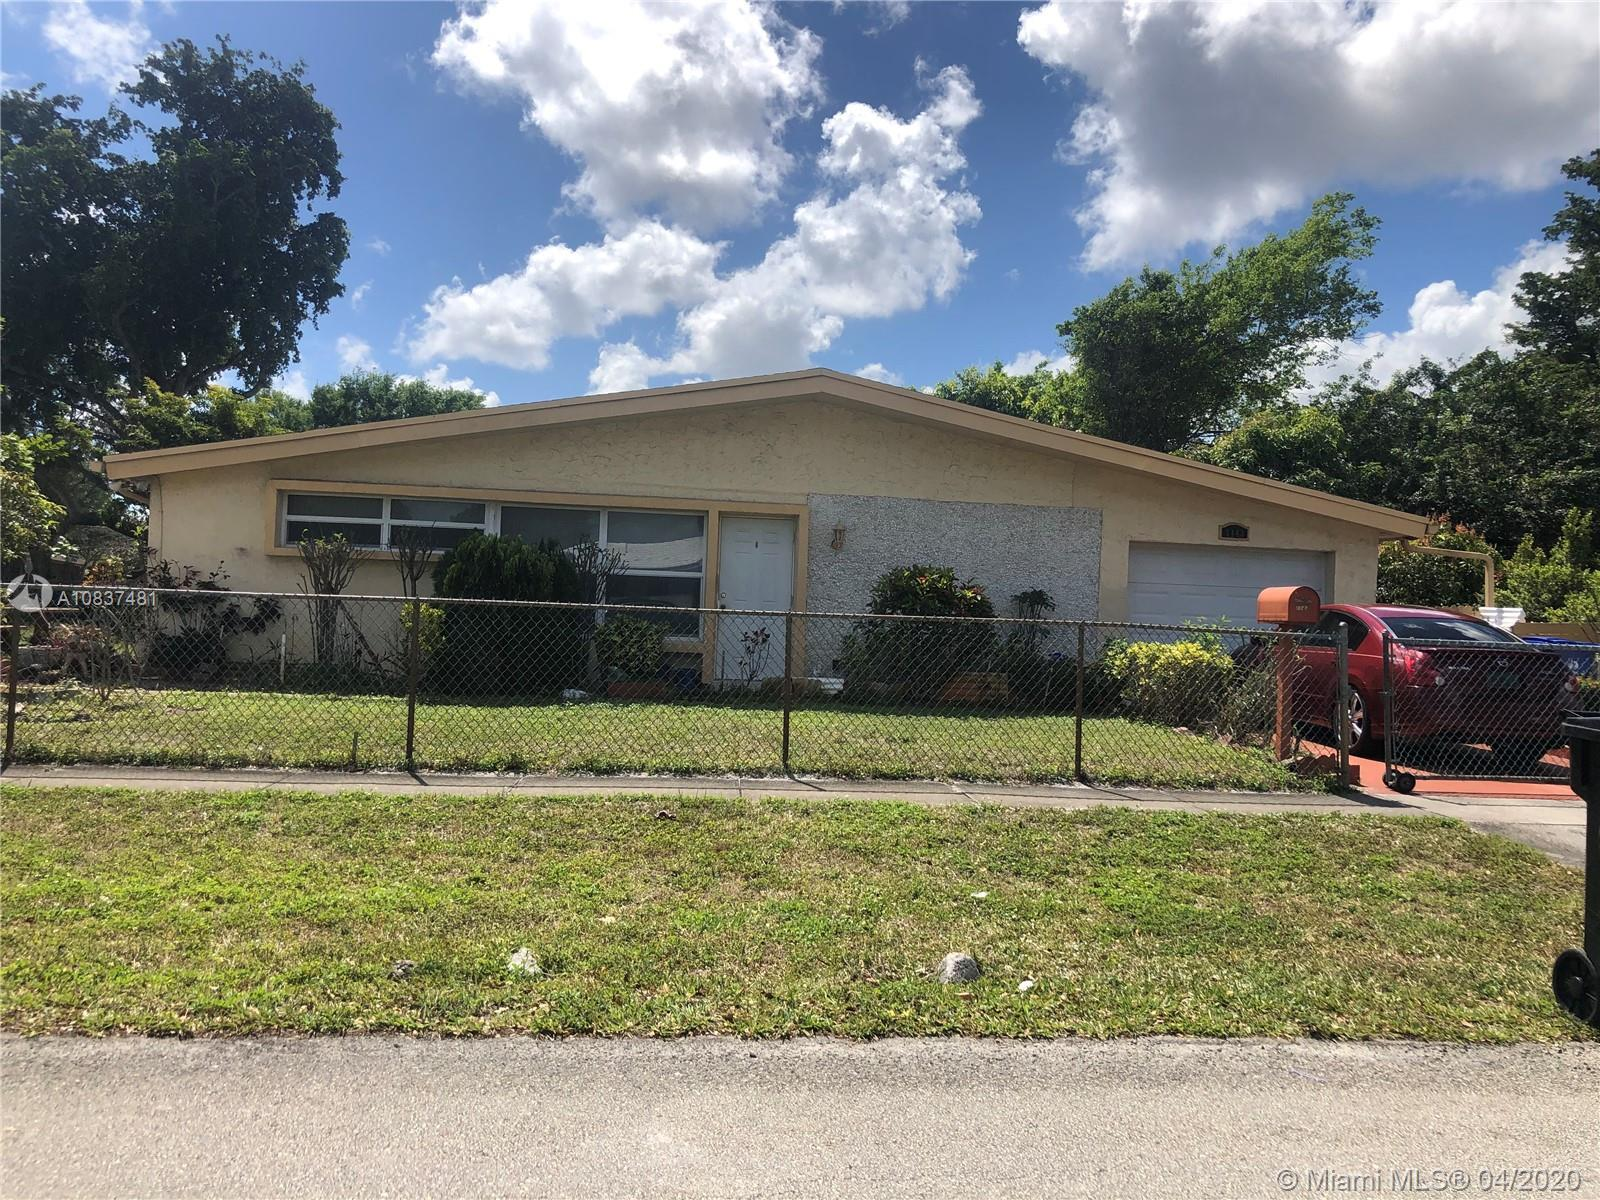 This lovely 3 bedroom 2 Bath home sits on huge corner lot with free tree and fence yard.  Bonus room